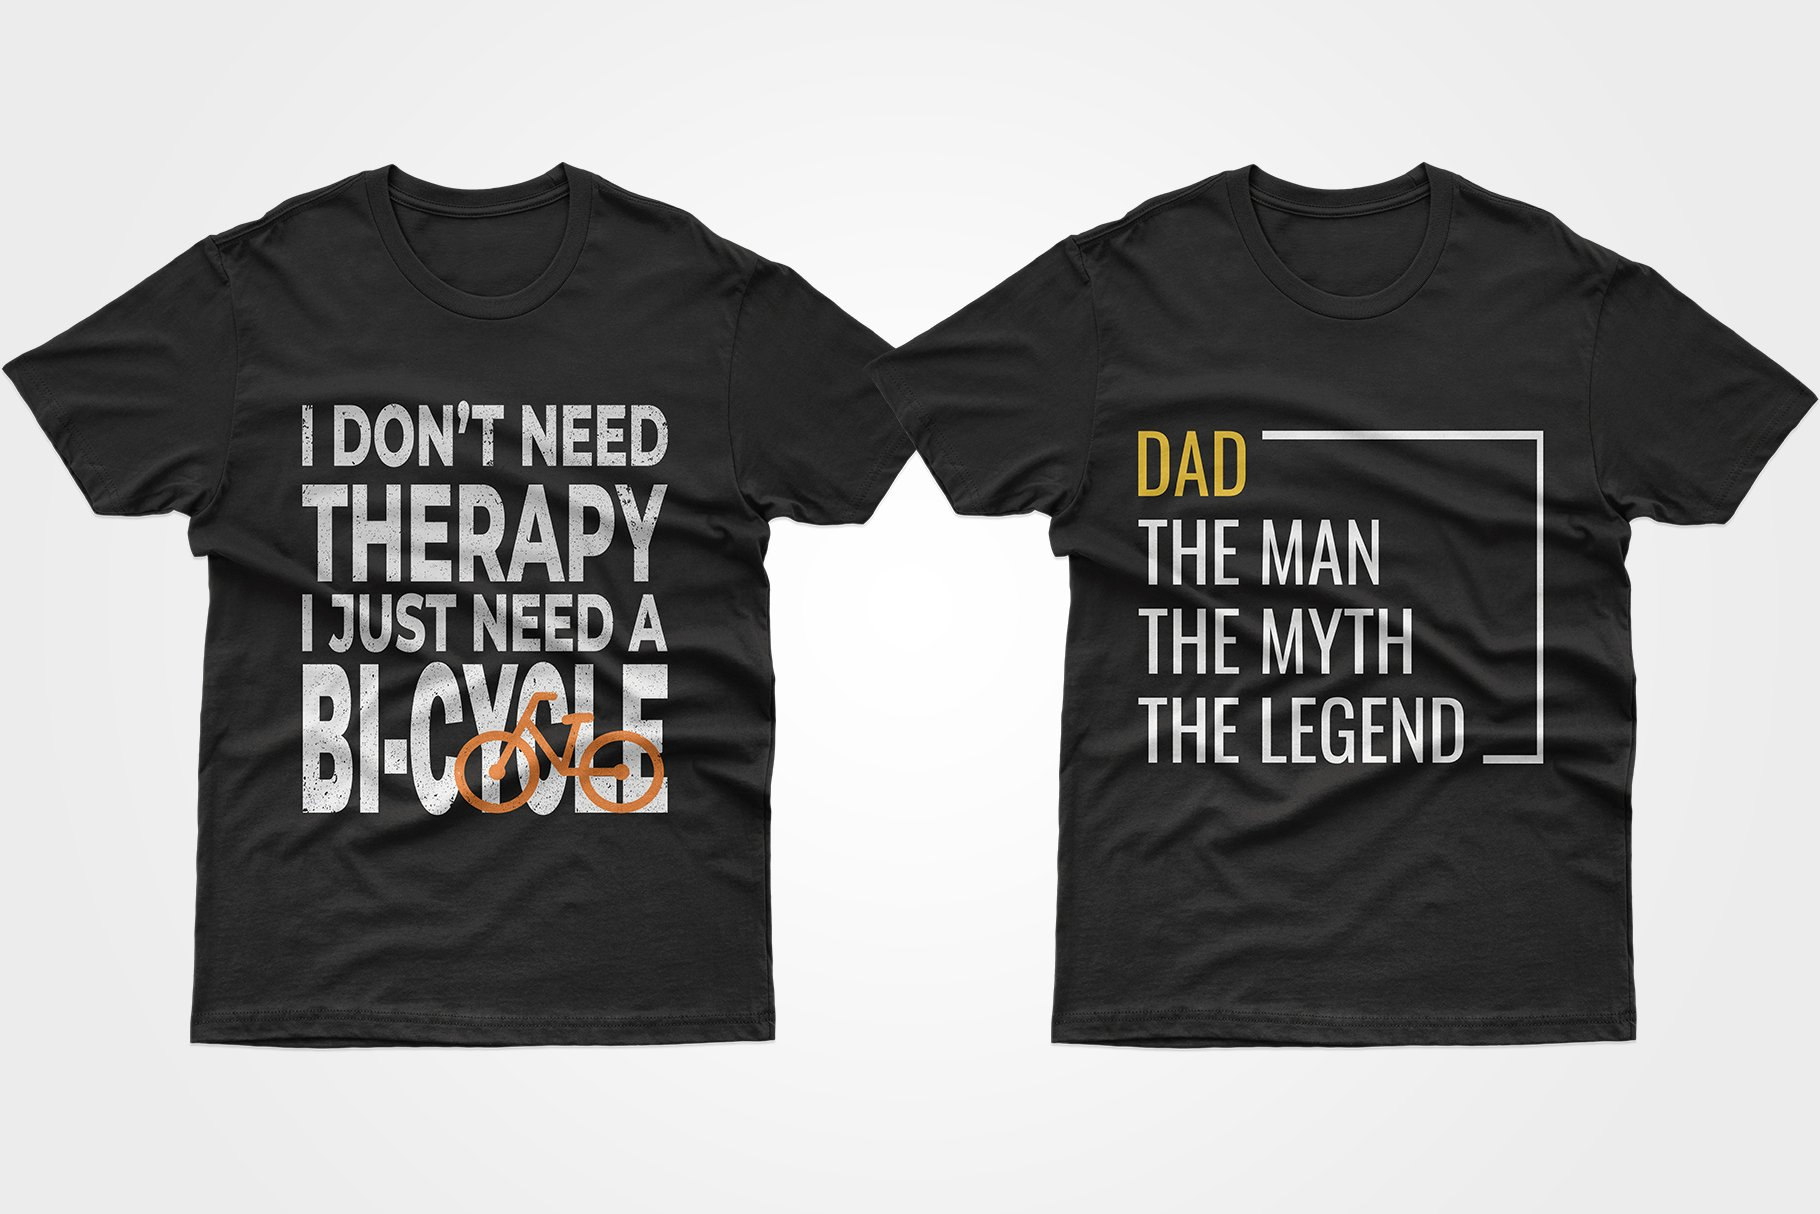 Two black T-shirts - both with a motivational lettering.